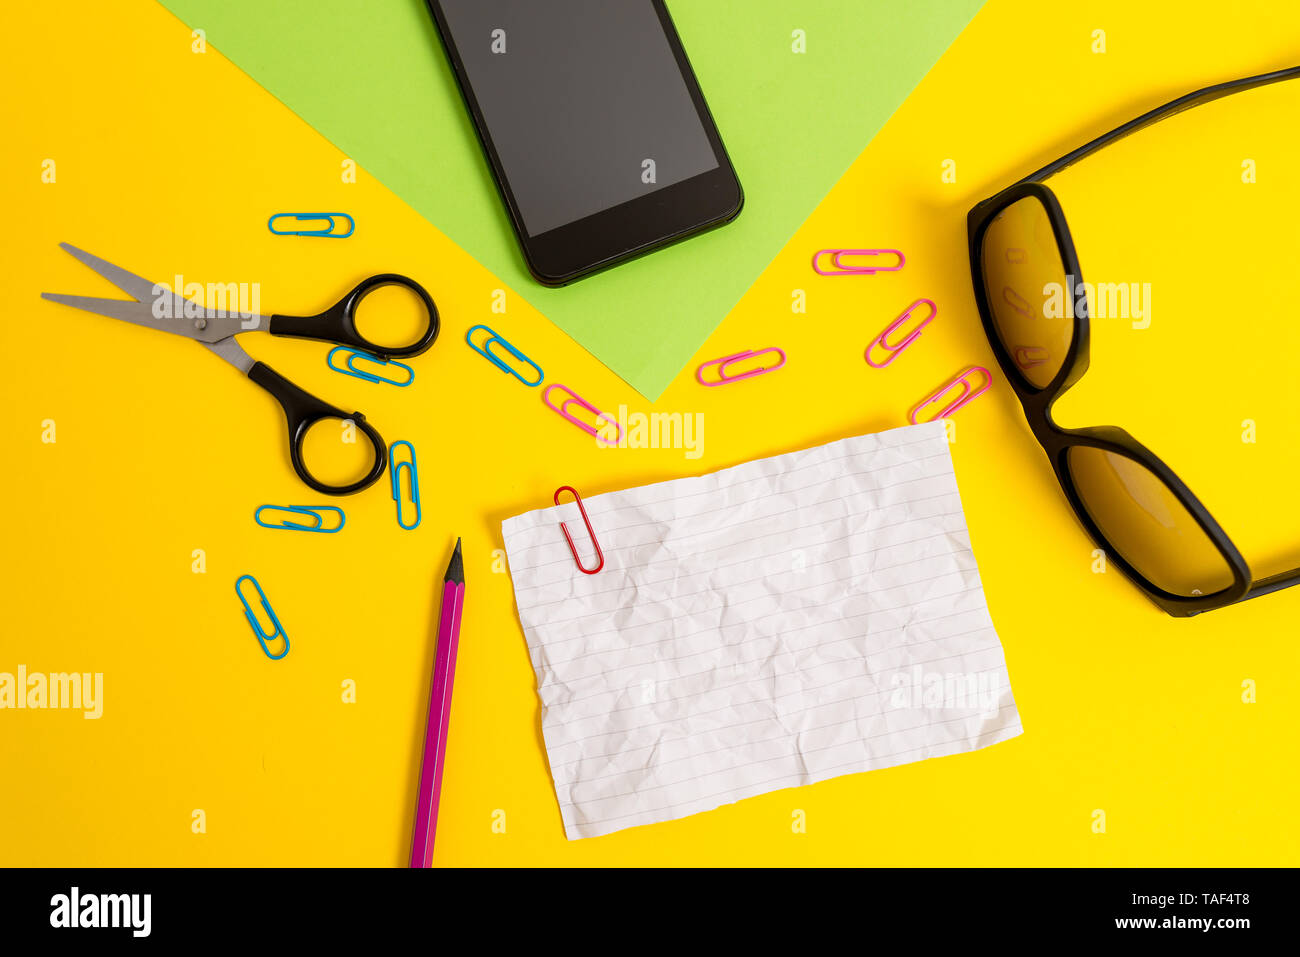 Paper sheets pencil clips smartphone scissors eyeglasses colored background Stock Photo